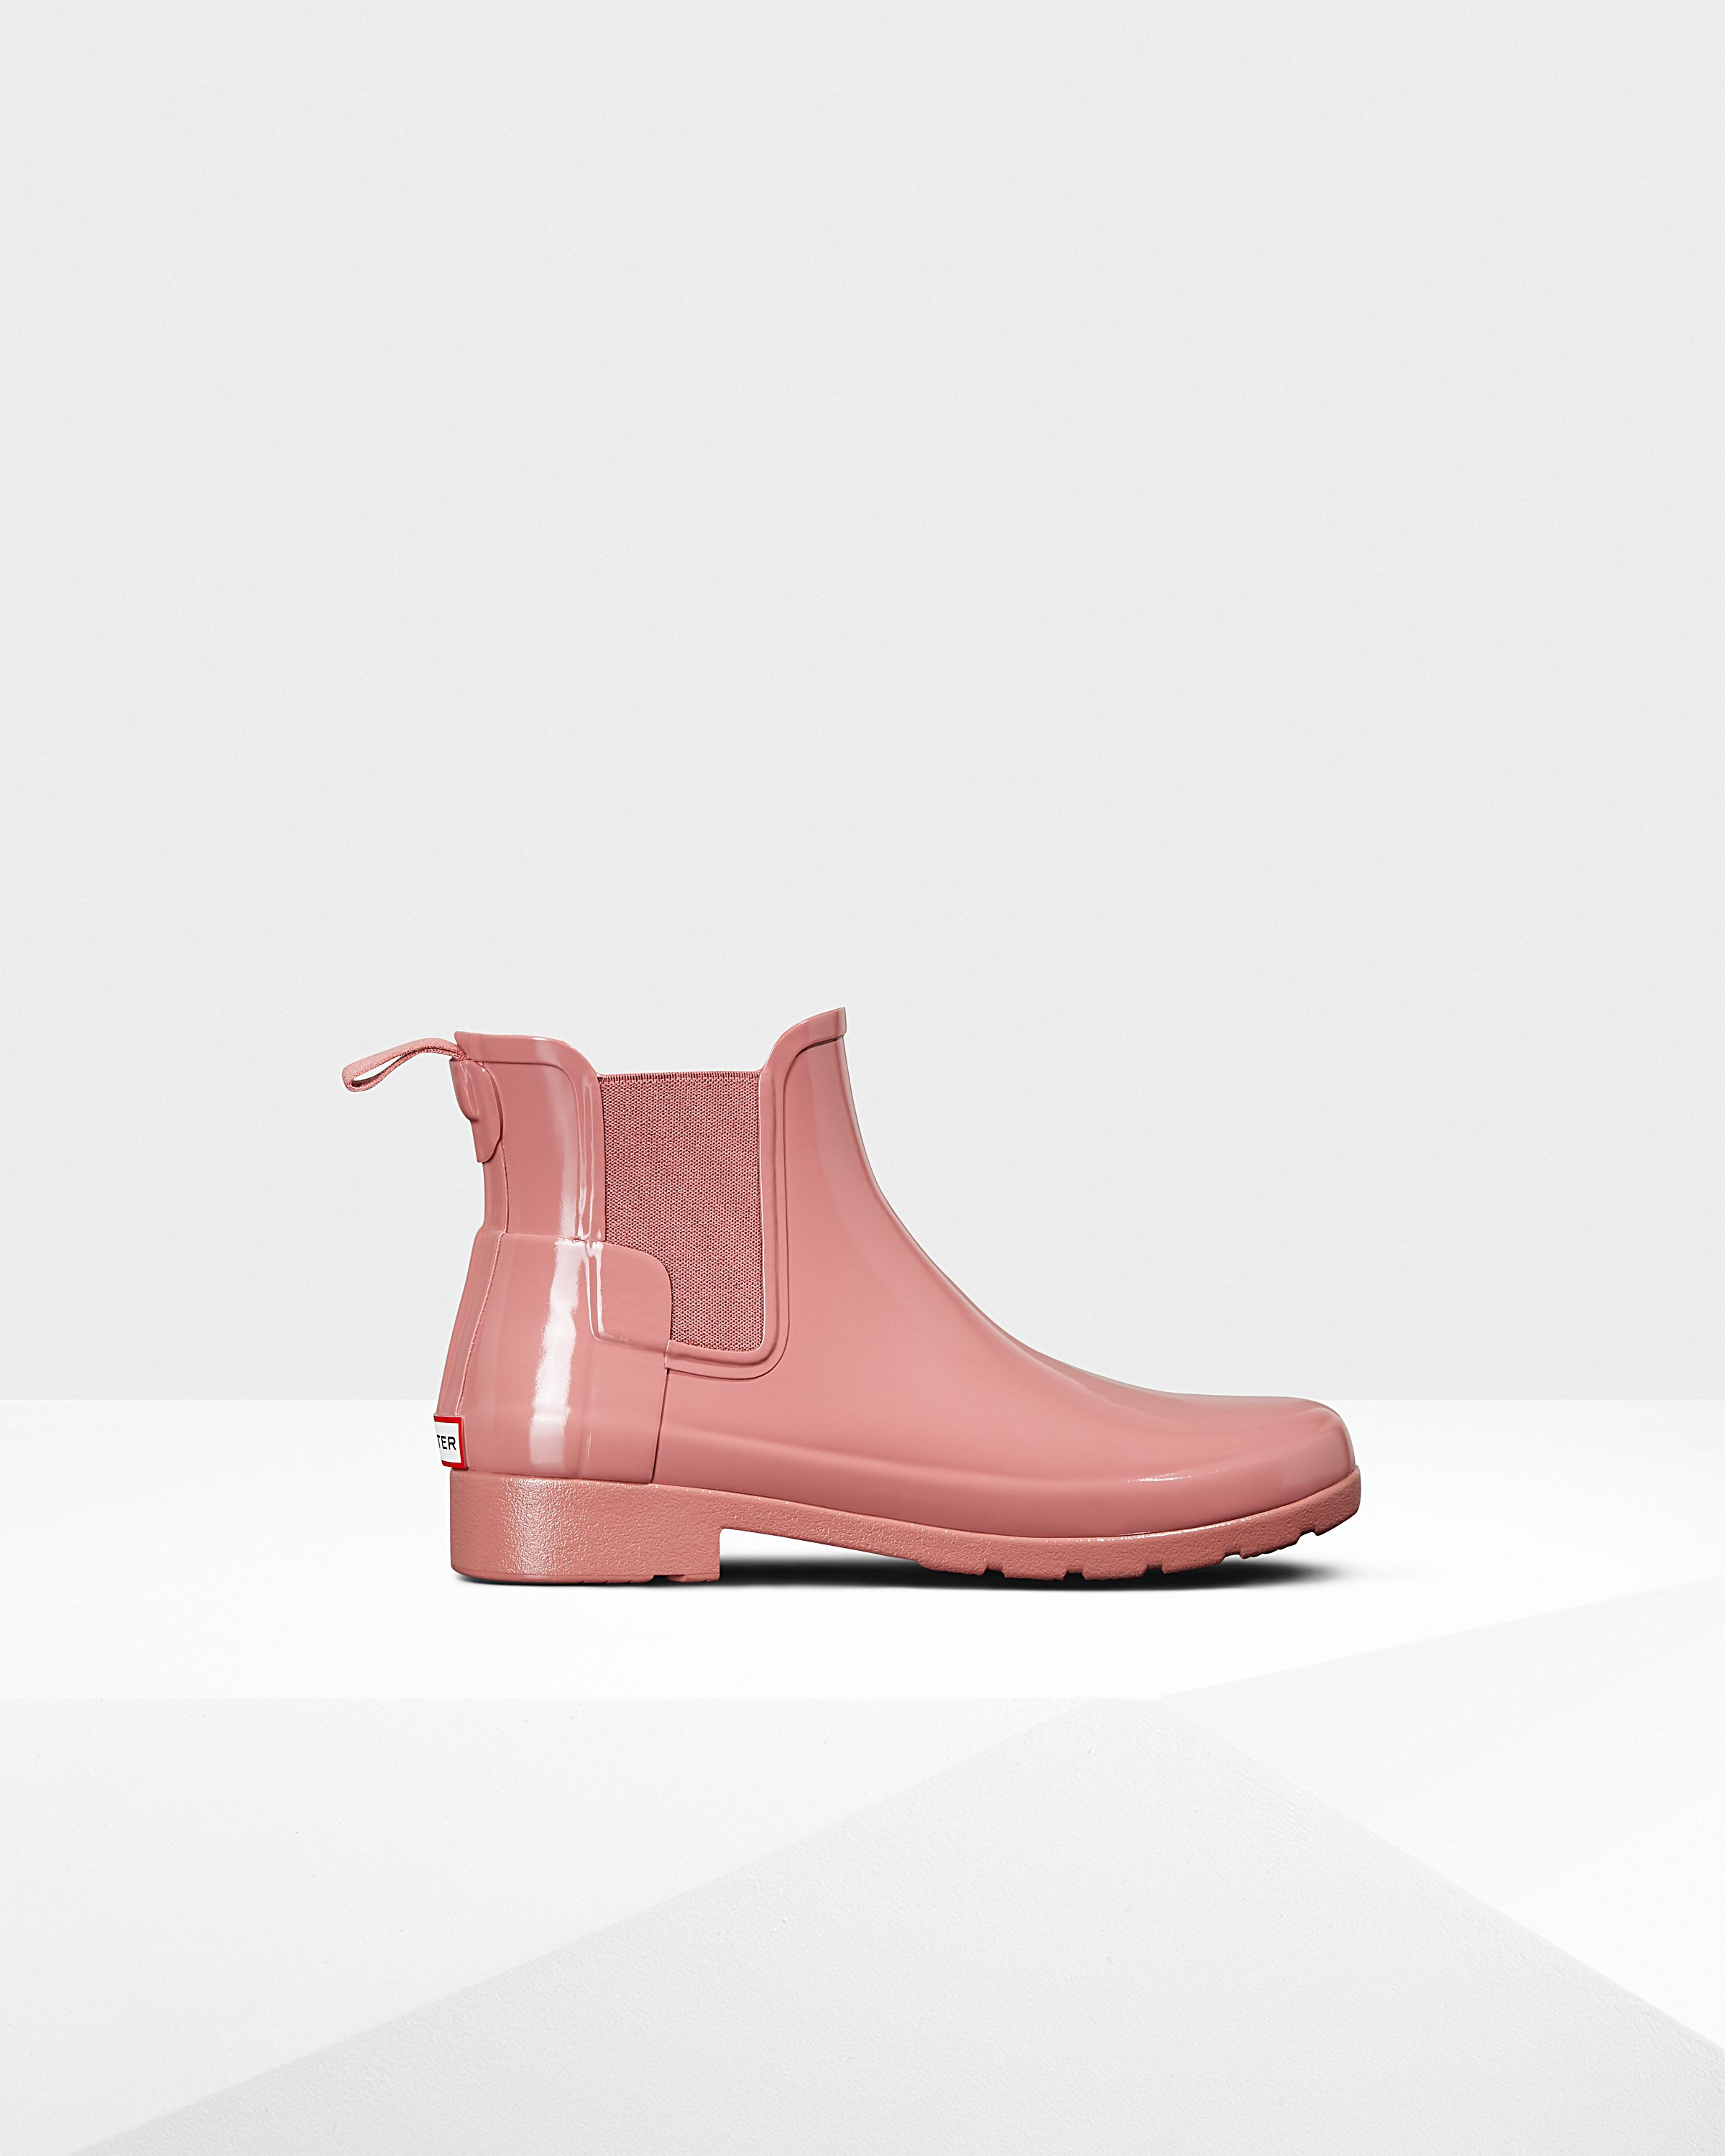 12dd4e936fd Buy Women s Original Refined Chelsea Gloss Boots from the Official Hunter  Boots Site with Free Delivery and Returns. Click here.